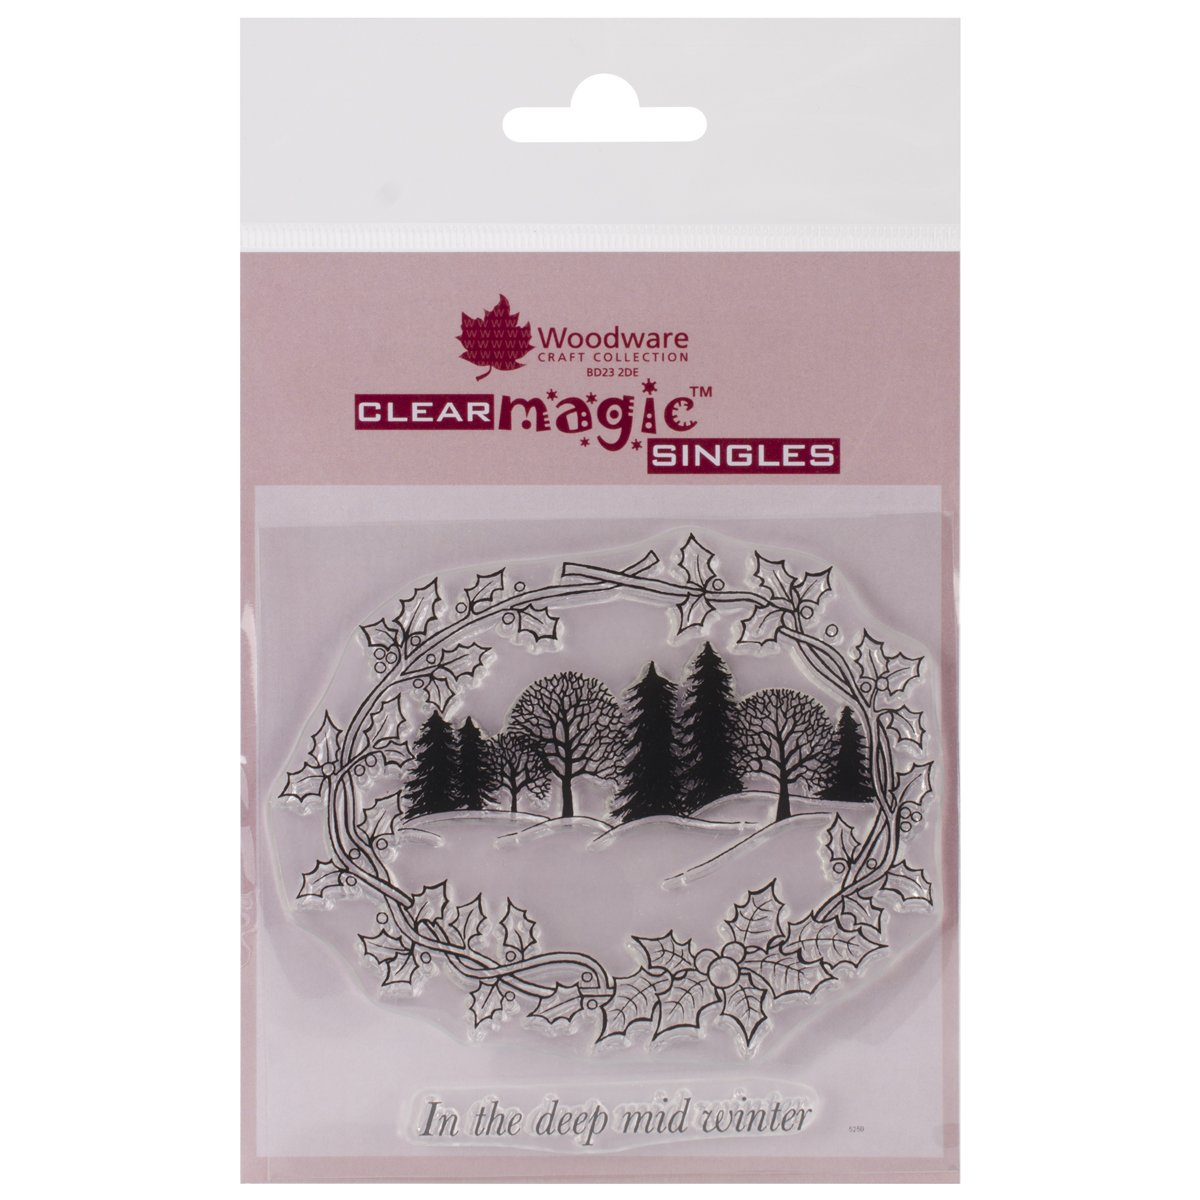 Woodware Clear Stamps 3.75''X4'' Sheet-Winter Wonderland Woodware Clear Stamps 3.75''X4'' Sheet-Win Woodware Craft Collection